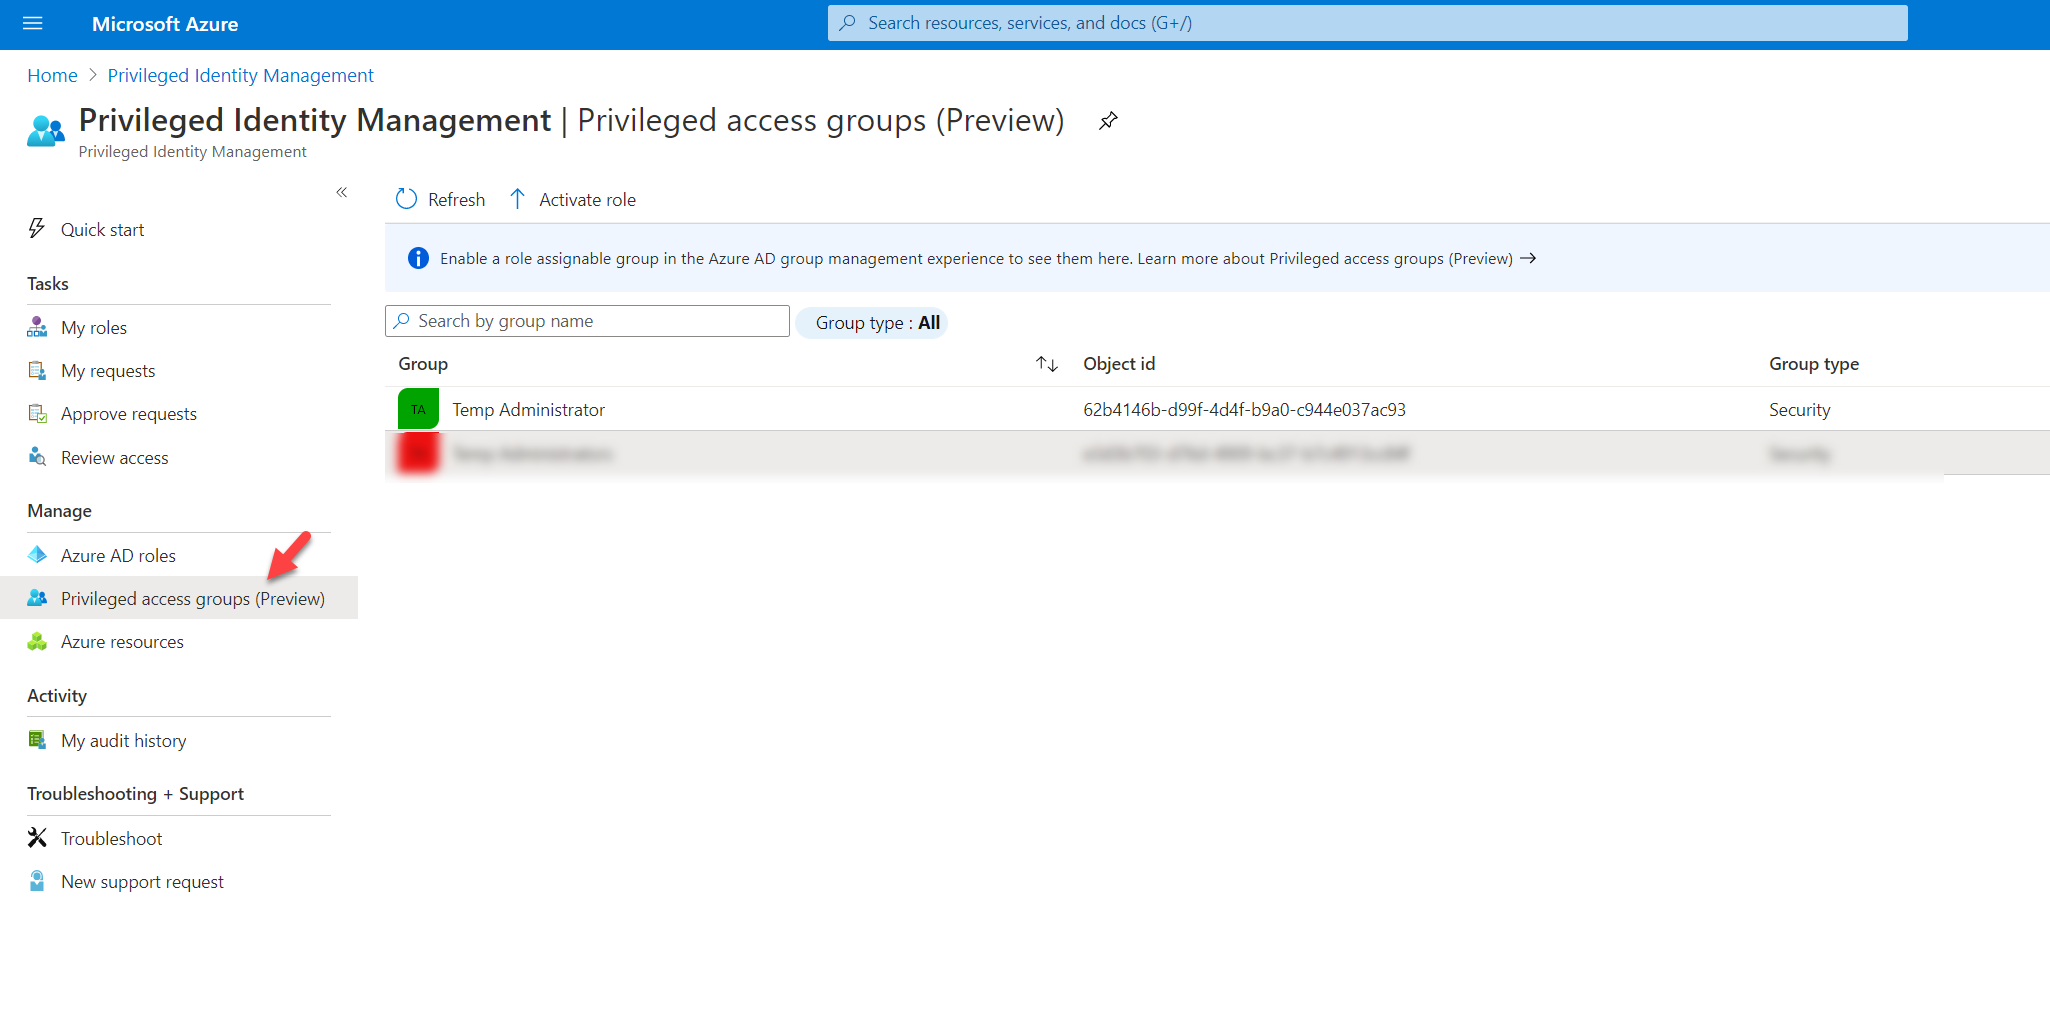 Privileged access groups (Preview) option for Azure AD PIM